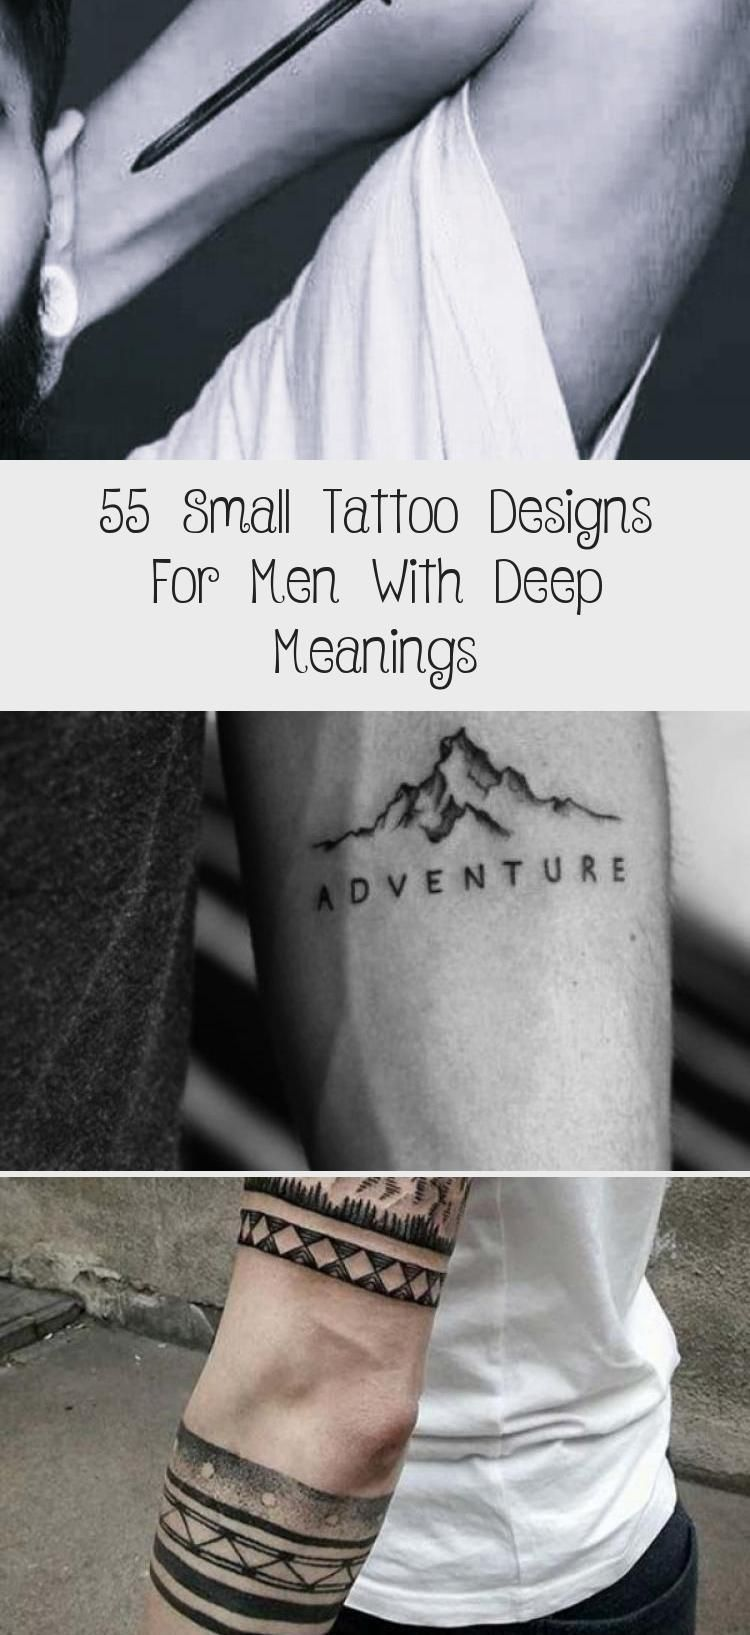 55 Small Tattoo Designs For Men With Deep Meanings Tattoos Small Tattoo Designs For Men With Deep In 2020 Small Tattoos Tattoo Designs Men Small Tattoos For Guys